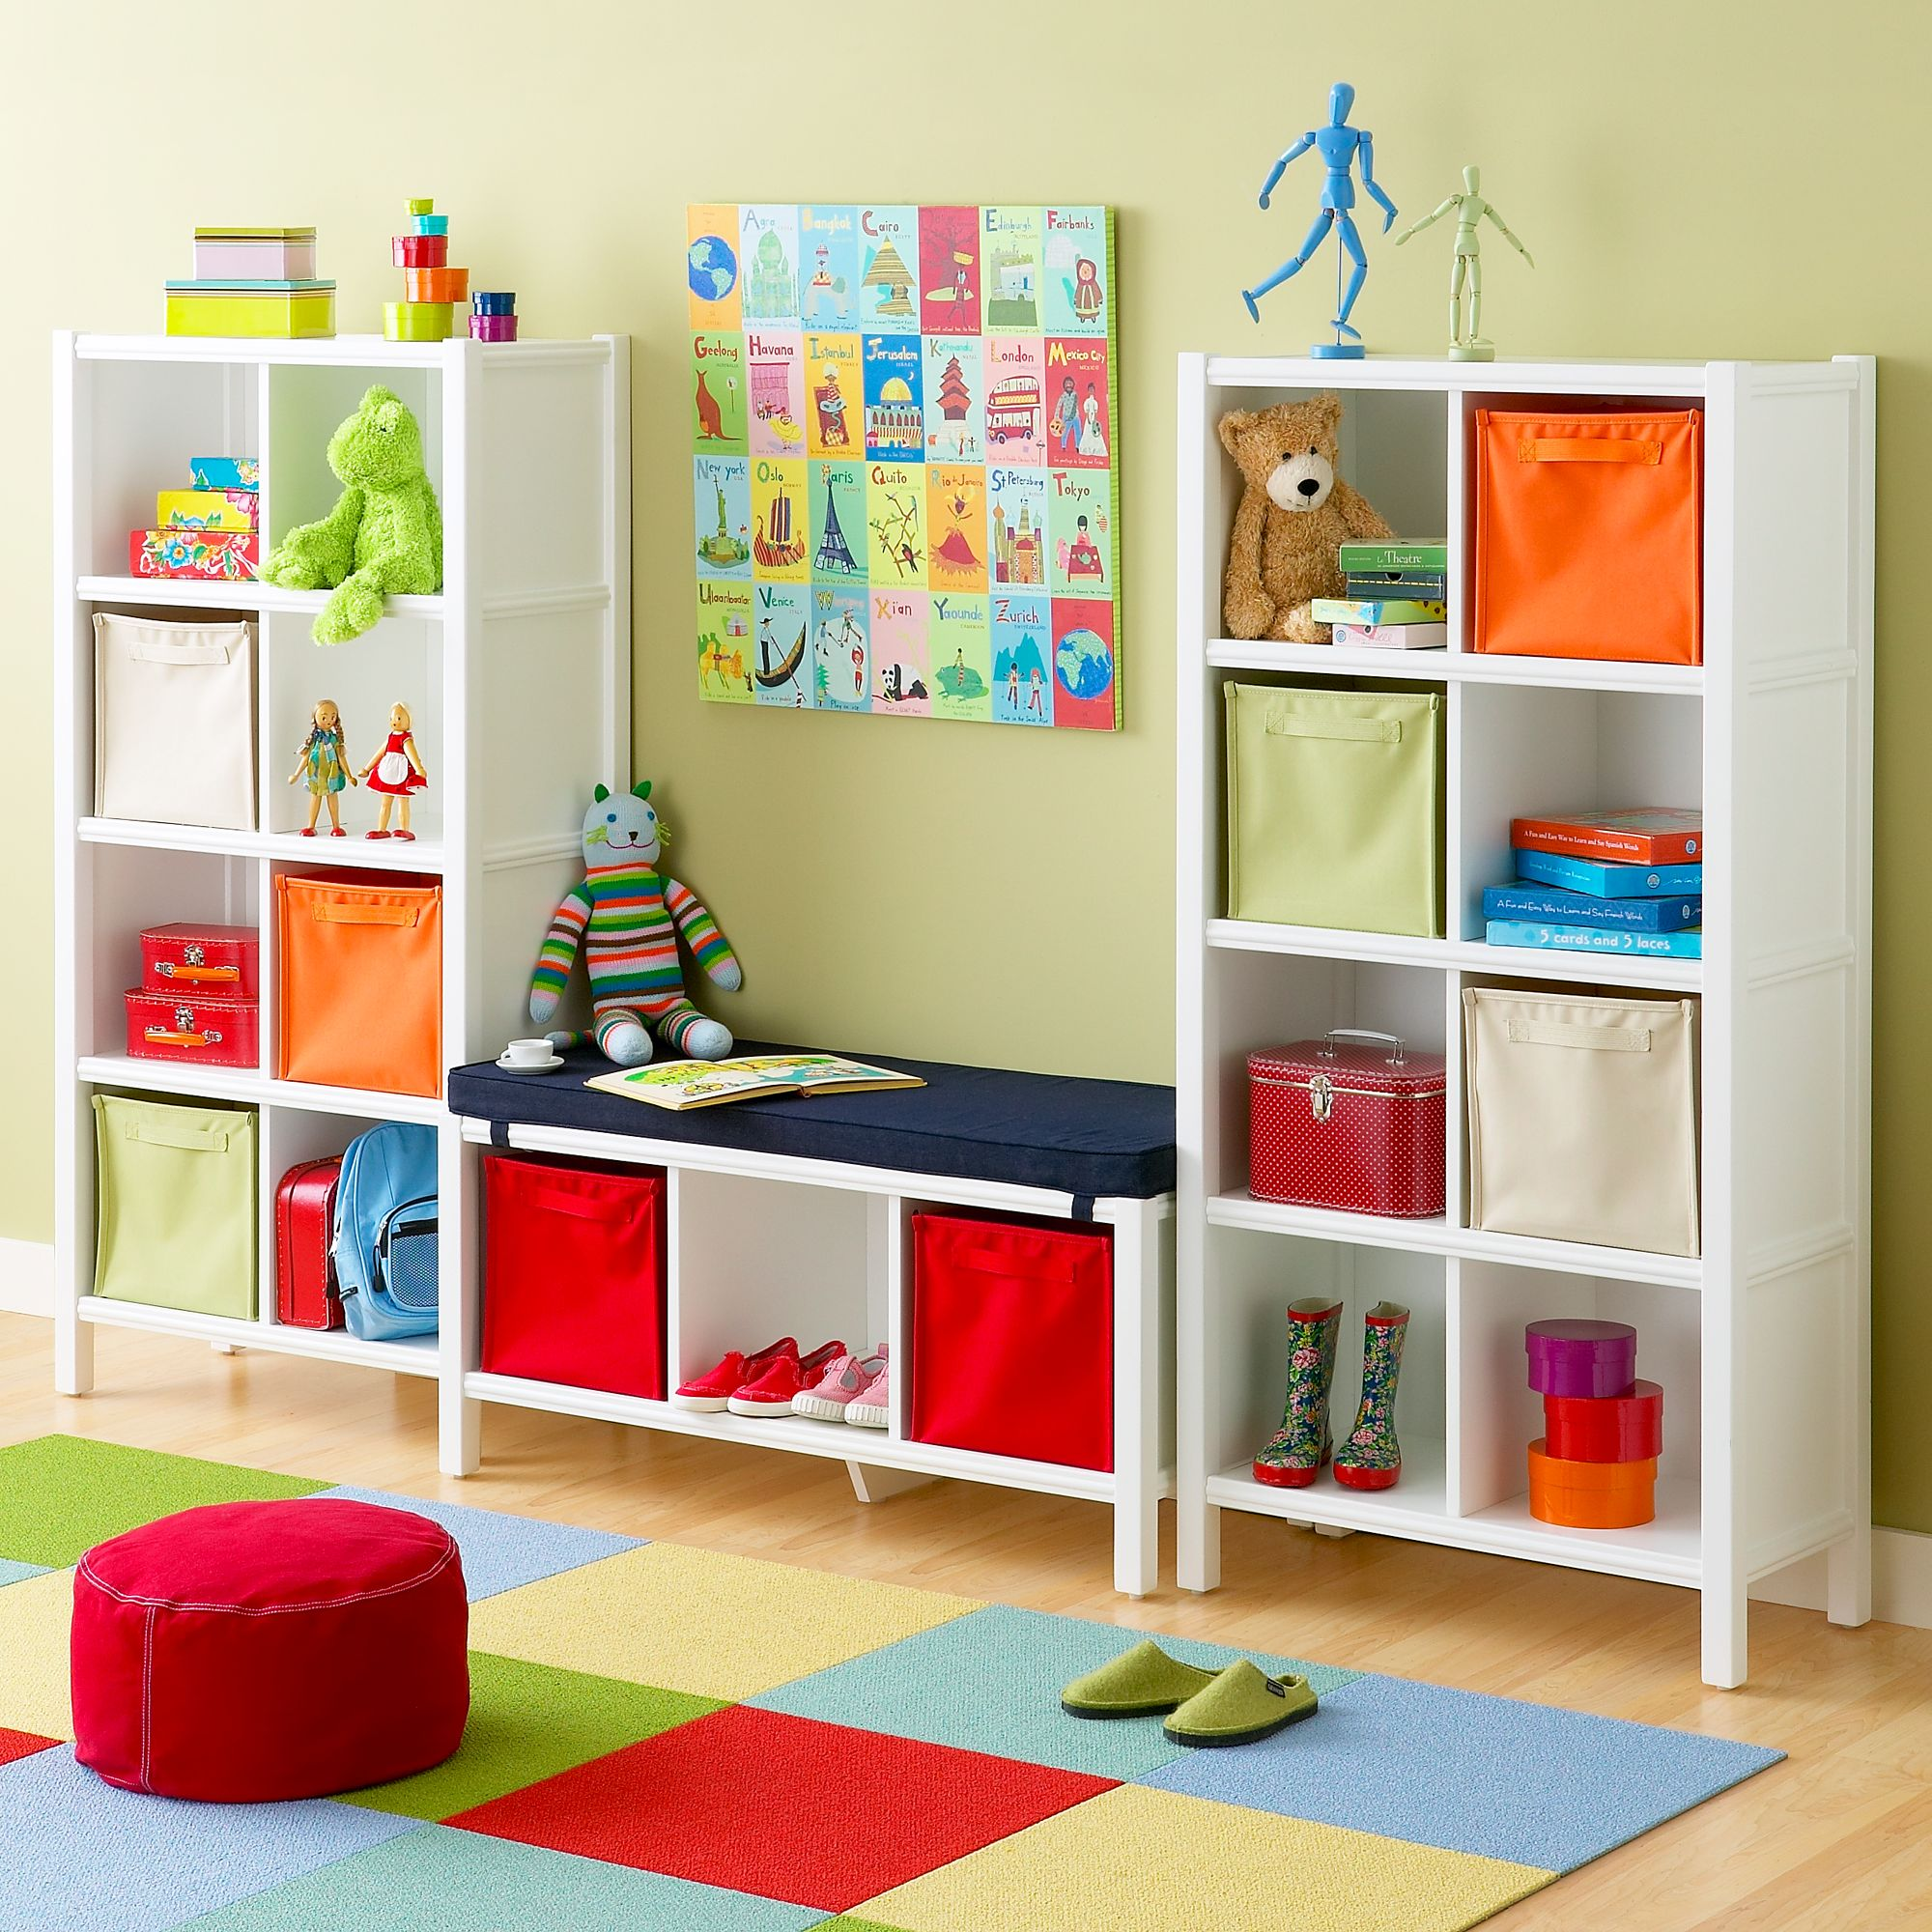 Ideas For Small Kids Rooms Posts Related Decoration Ideas Small Kids Bedroom Children